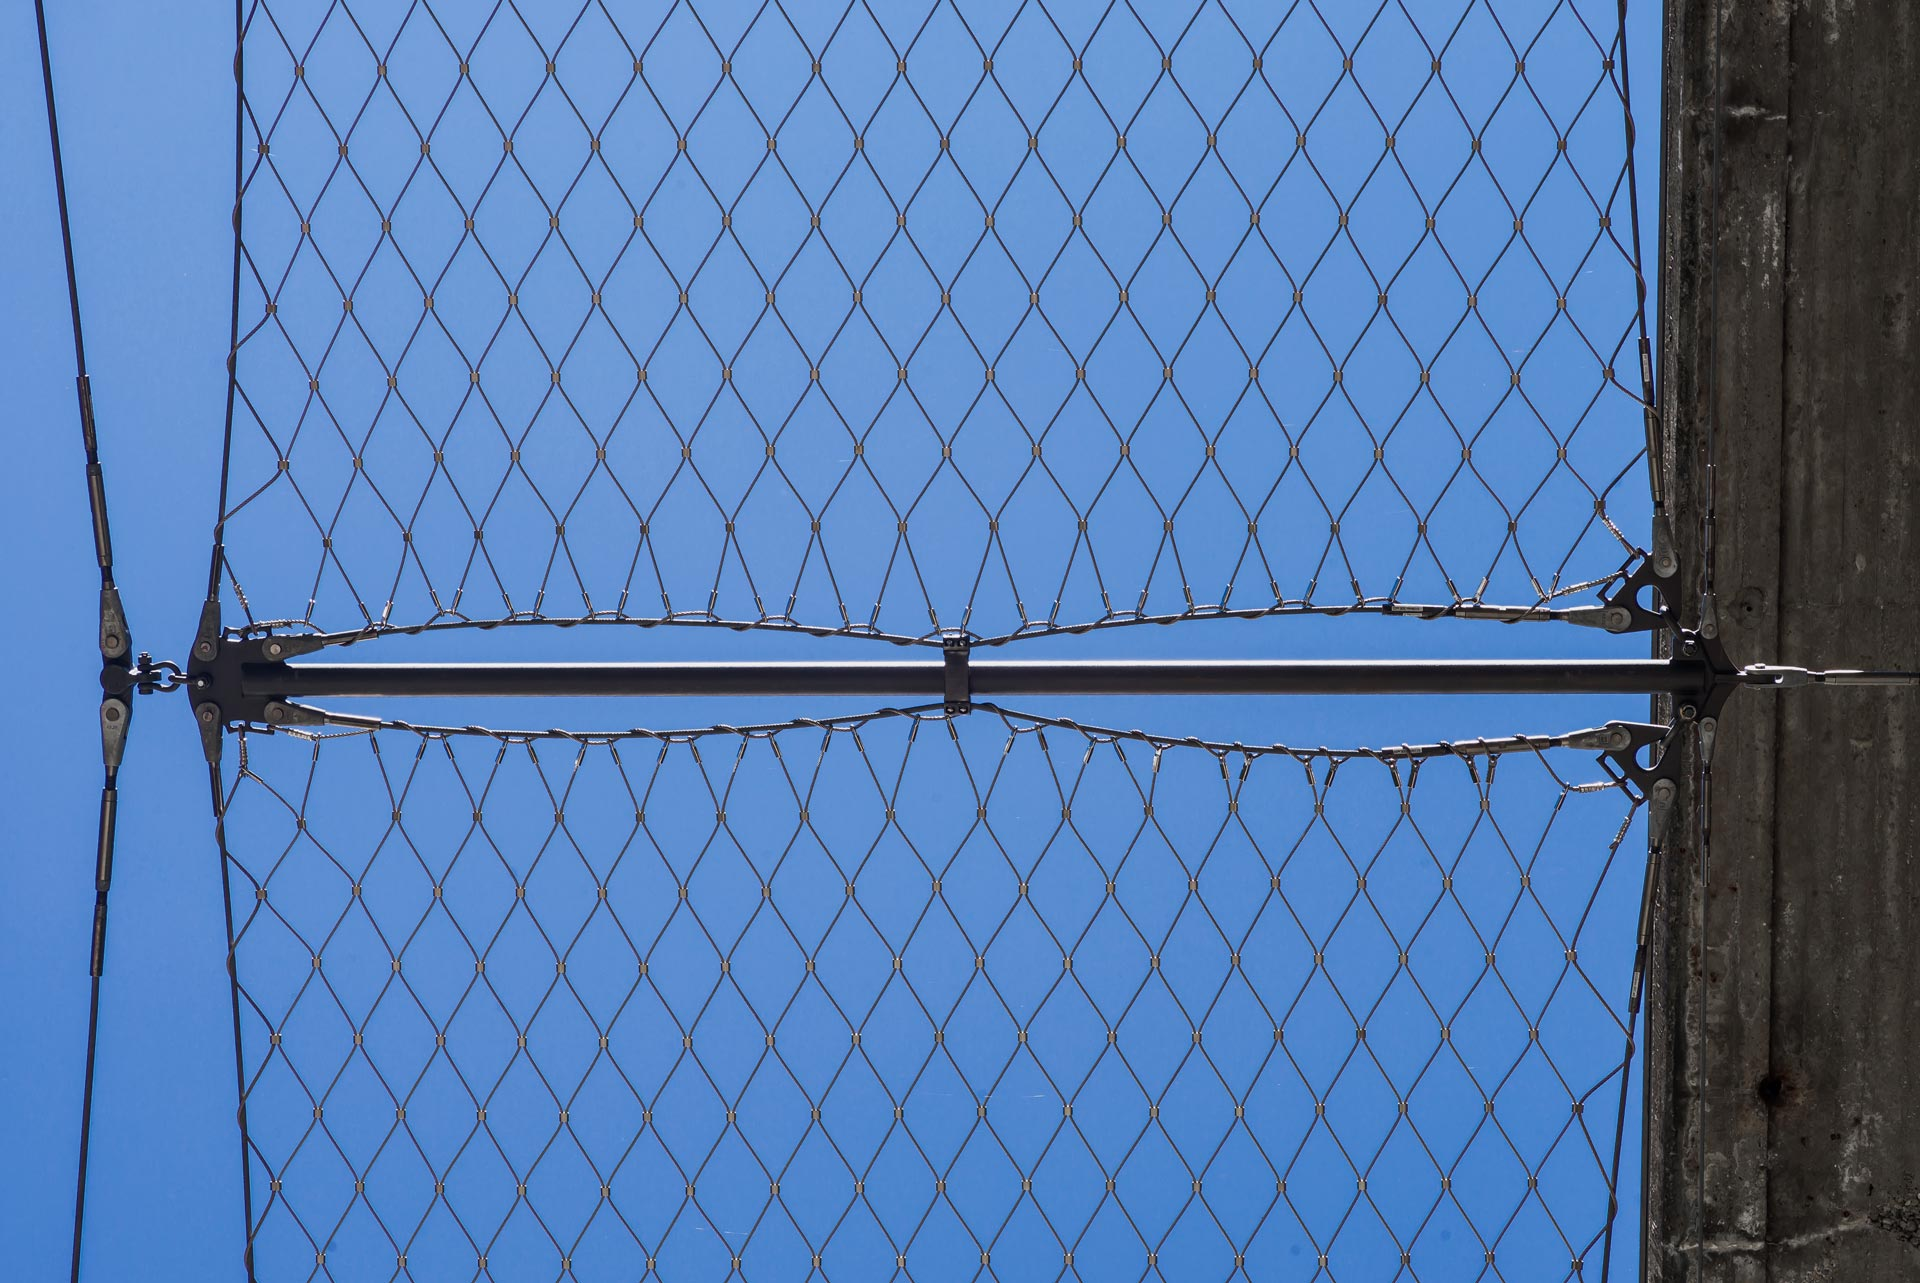 bridge safety net made from steel and blue sky